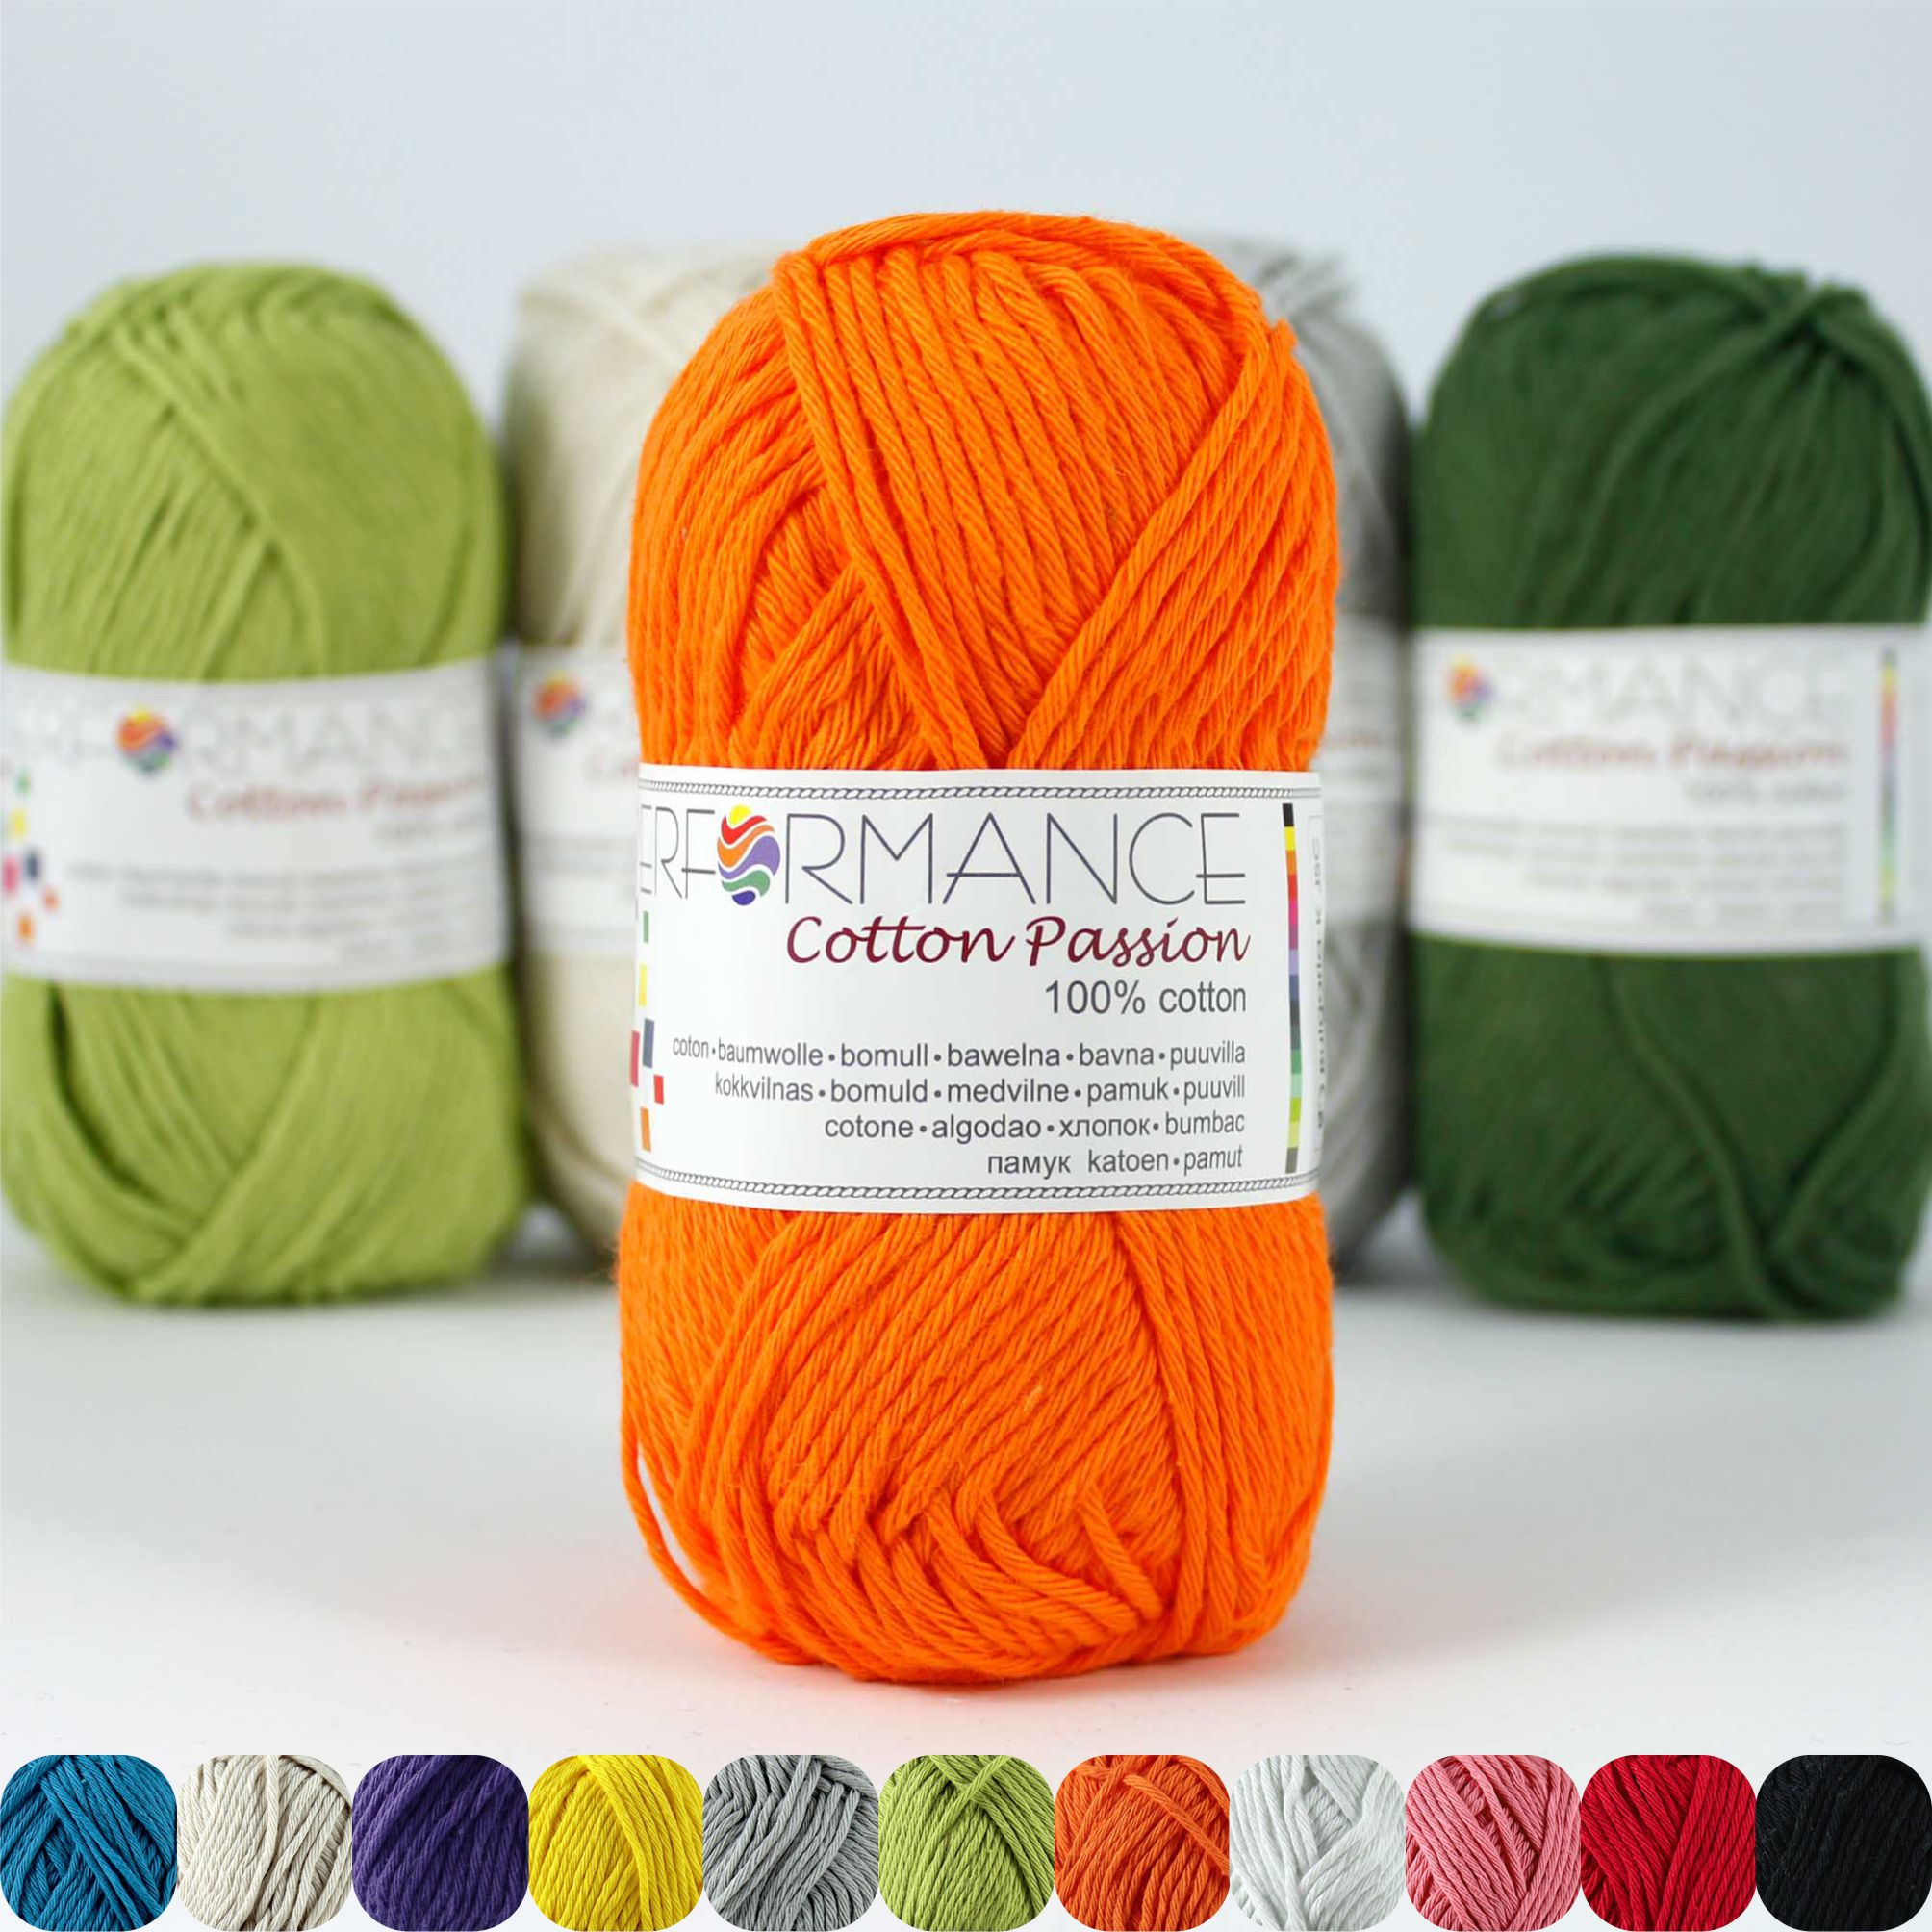 Garn Cotton Passion - 100% Baumwolle -  NM 17/4 - 85 m pro 50 g - Orange 0243